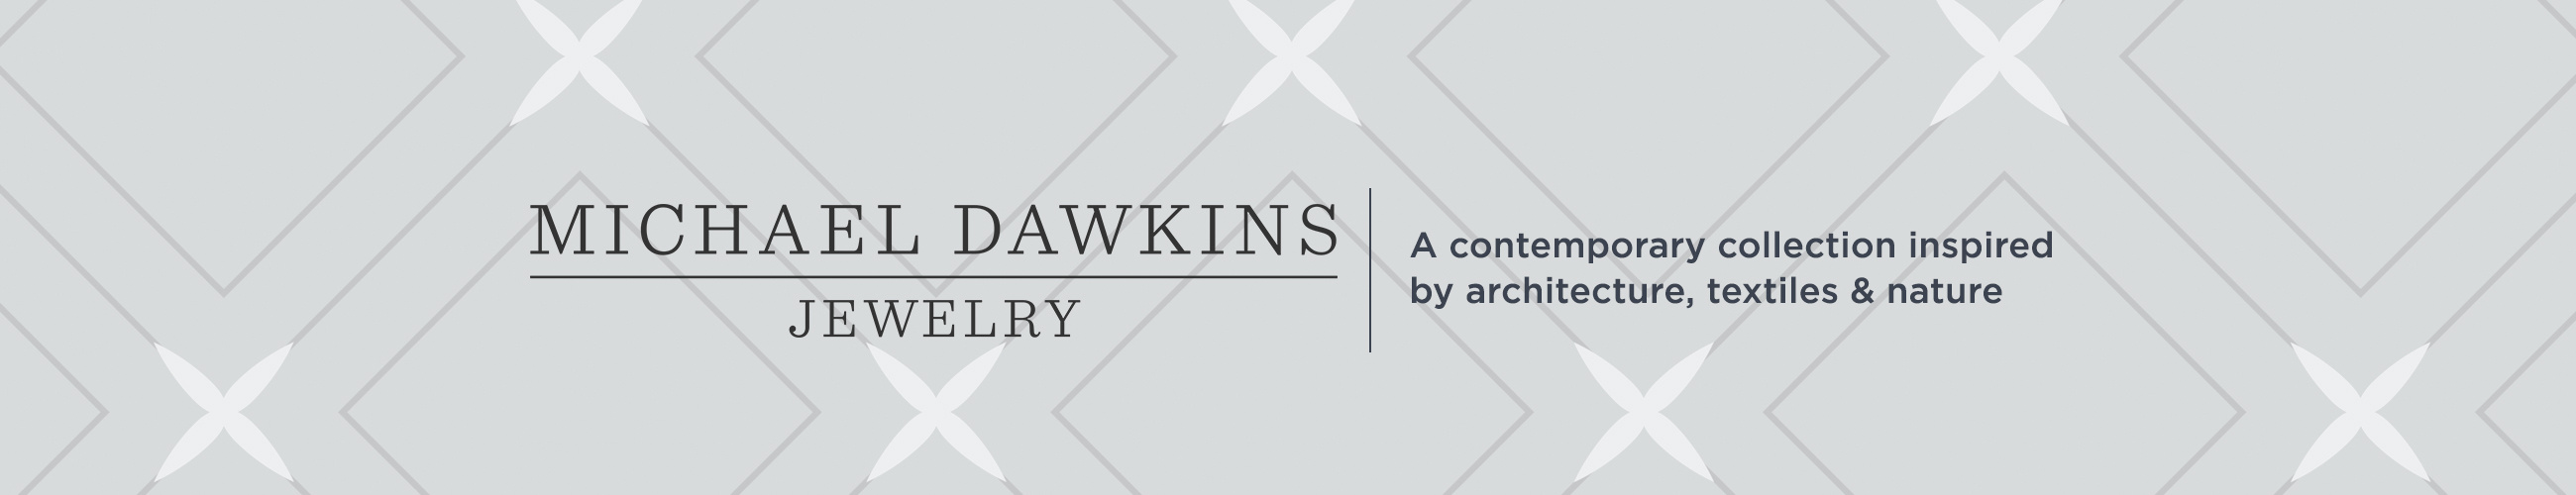 Michael Dawkins - A contemporary collection inspired by architecture, textiles & nature